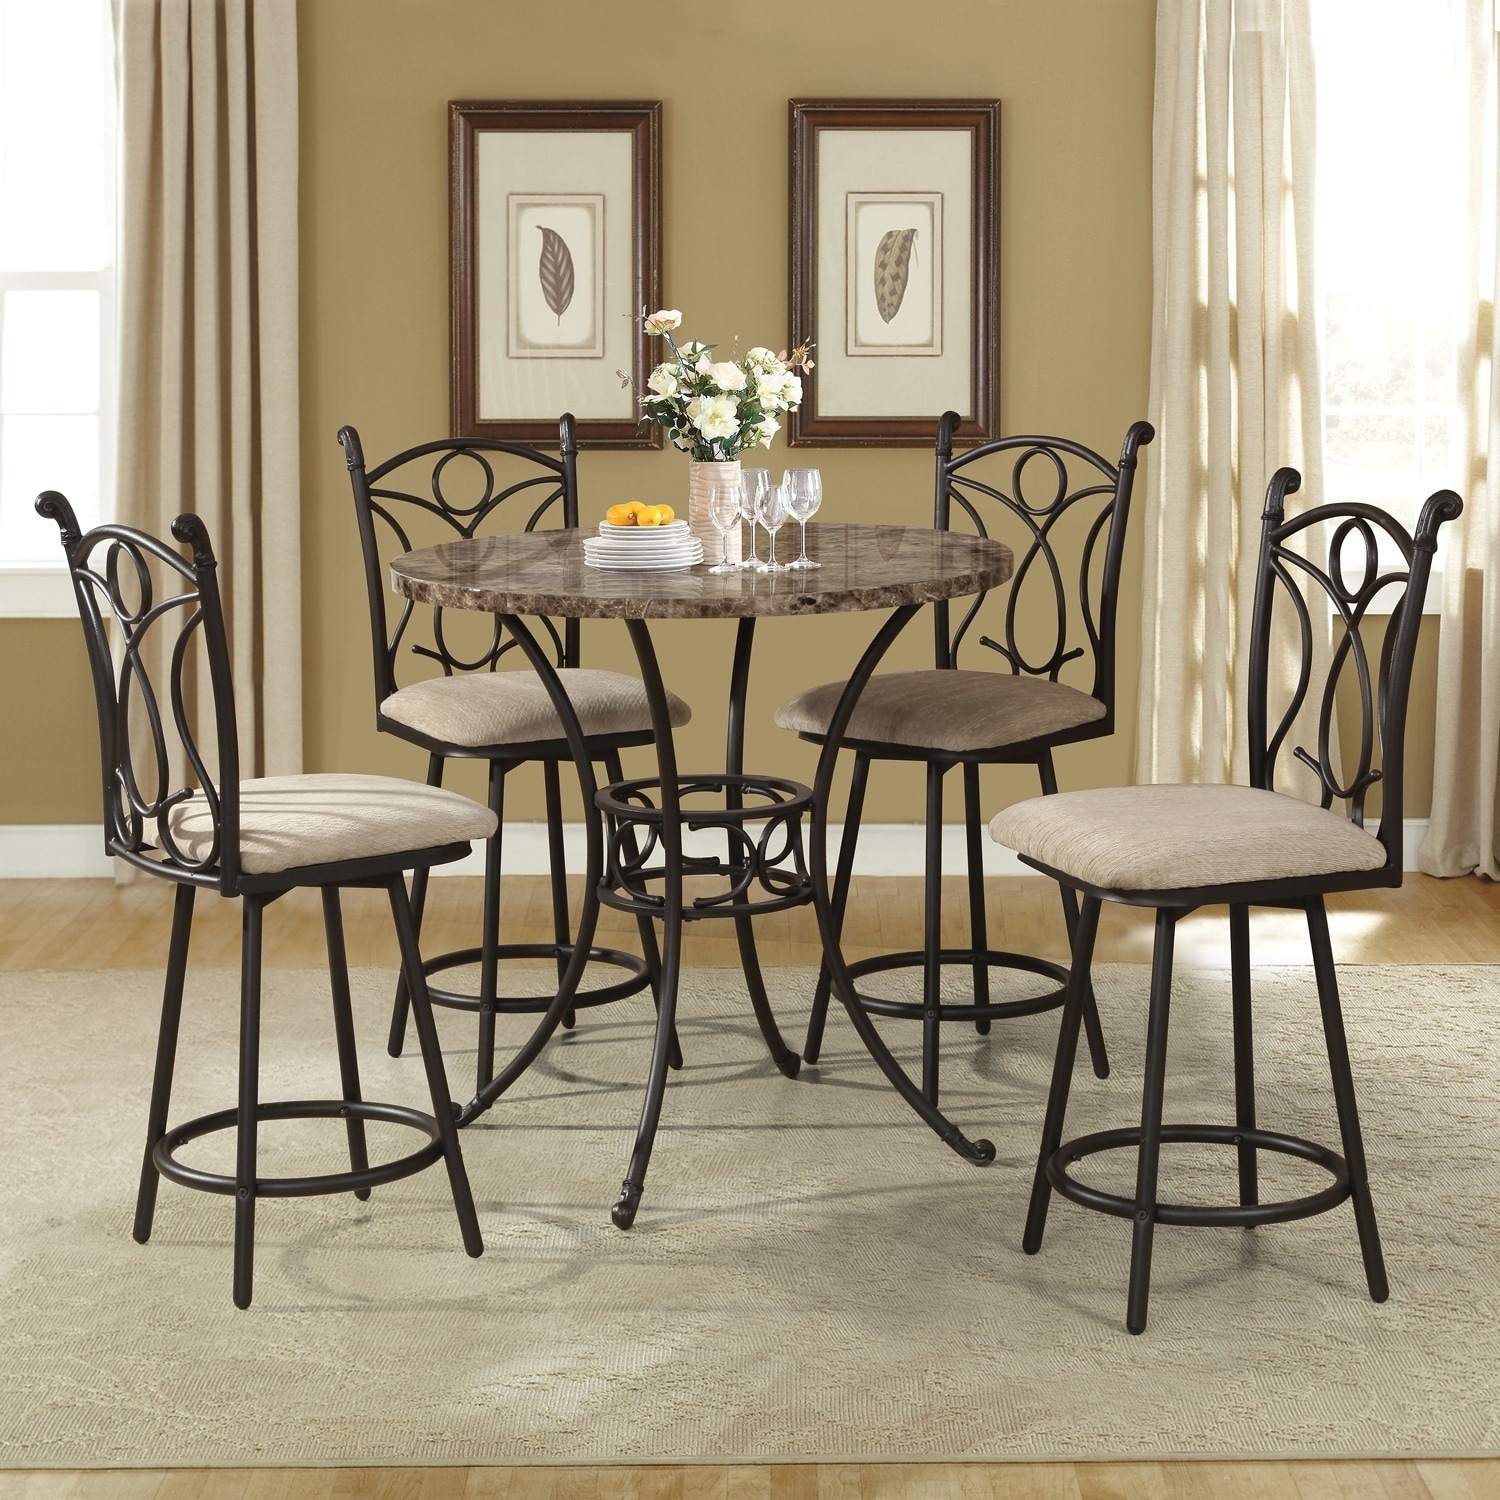 5 Piece Brown Metal Dining Set with Counter Height Faux ...